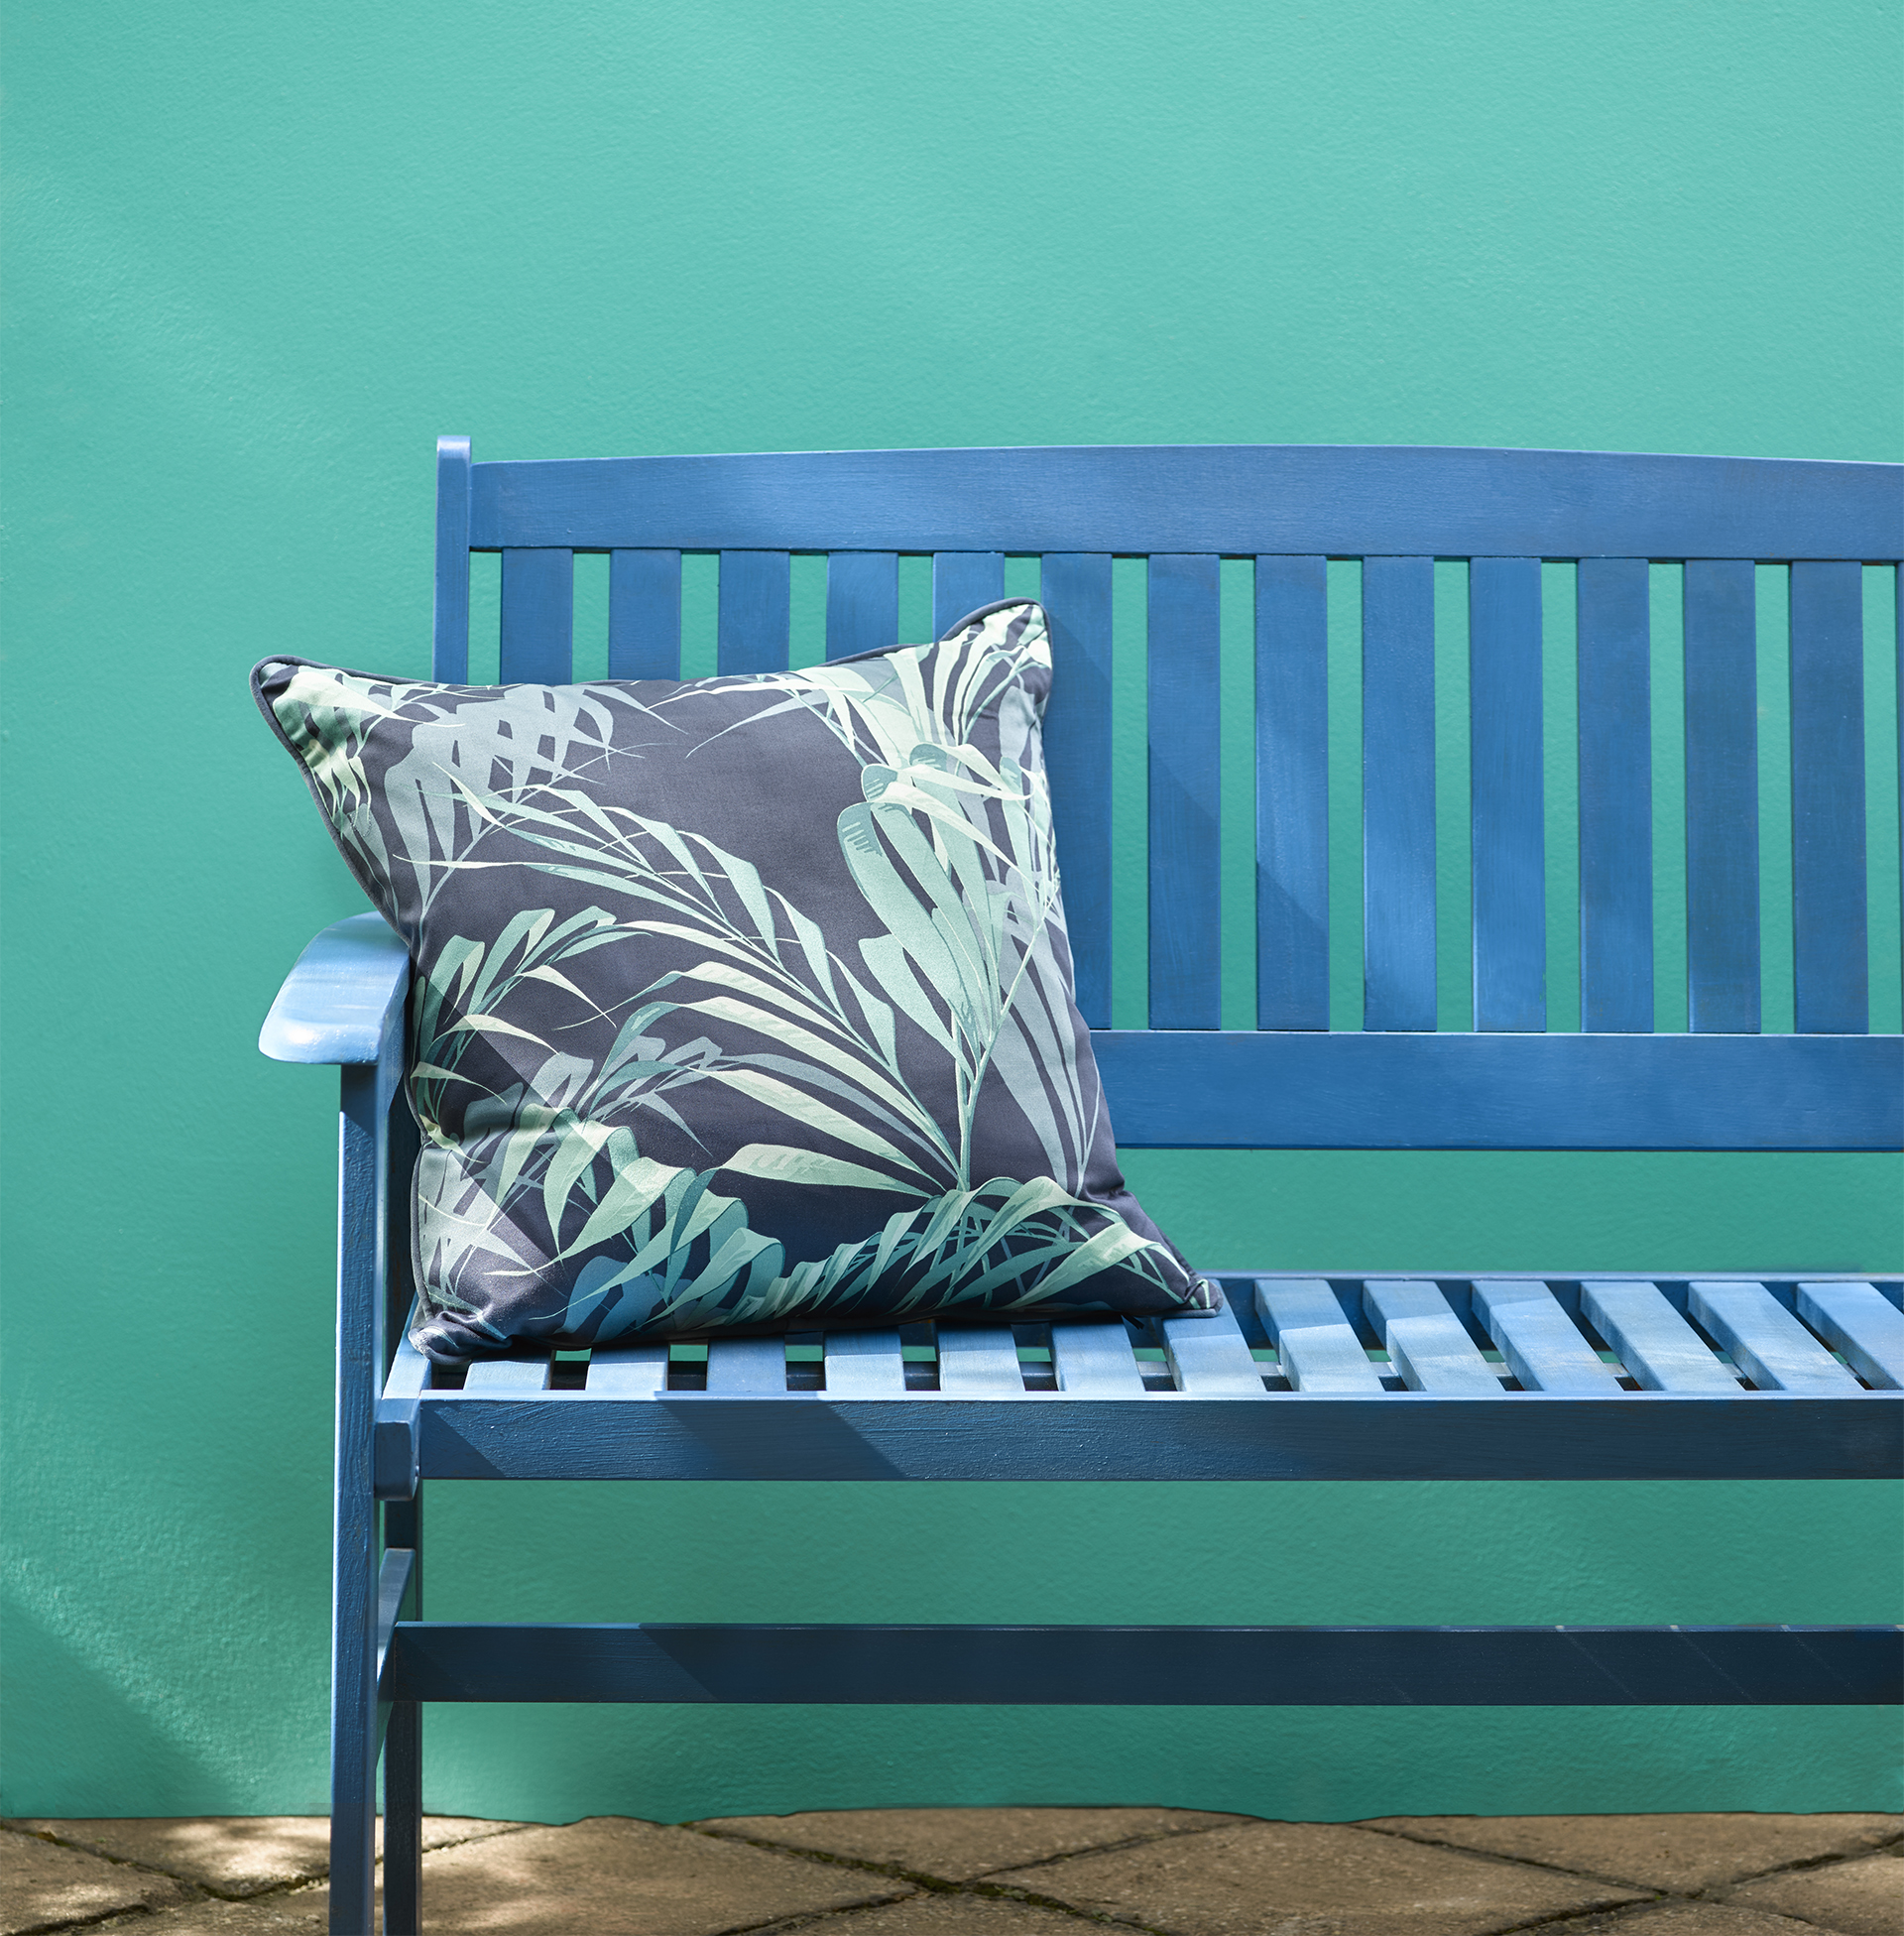 Royal blue painted bench with blue/green fern patterned cushion against bright turquoise wall, tiled floor